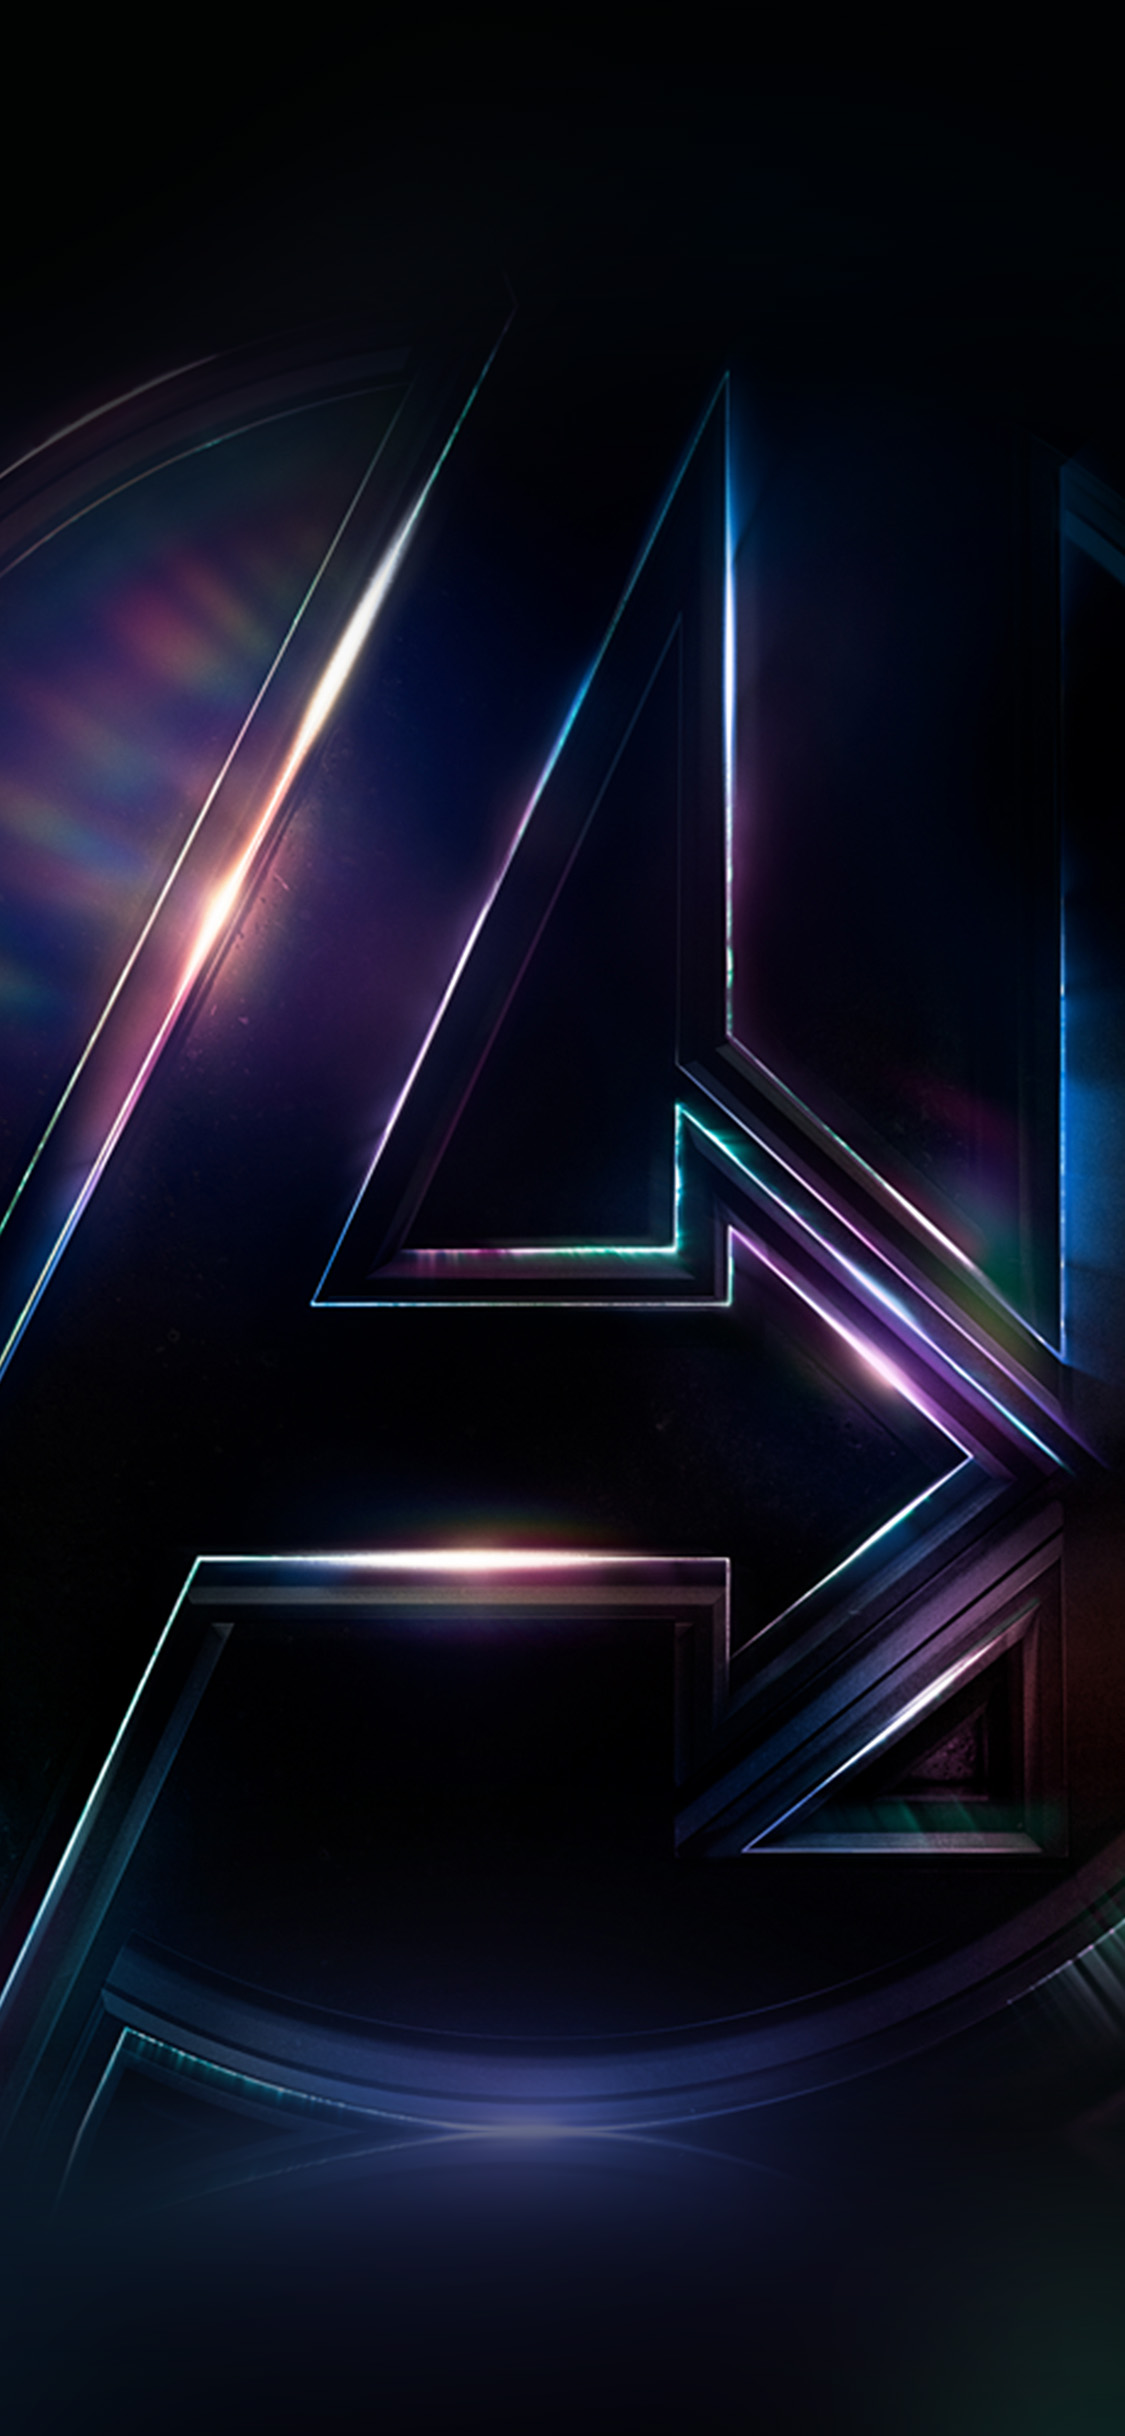 Anime Wallpaper Iphone 7 Plus Be49 Avengers Logo Dark Film Art Illustration Marvel Wallpaper